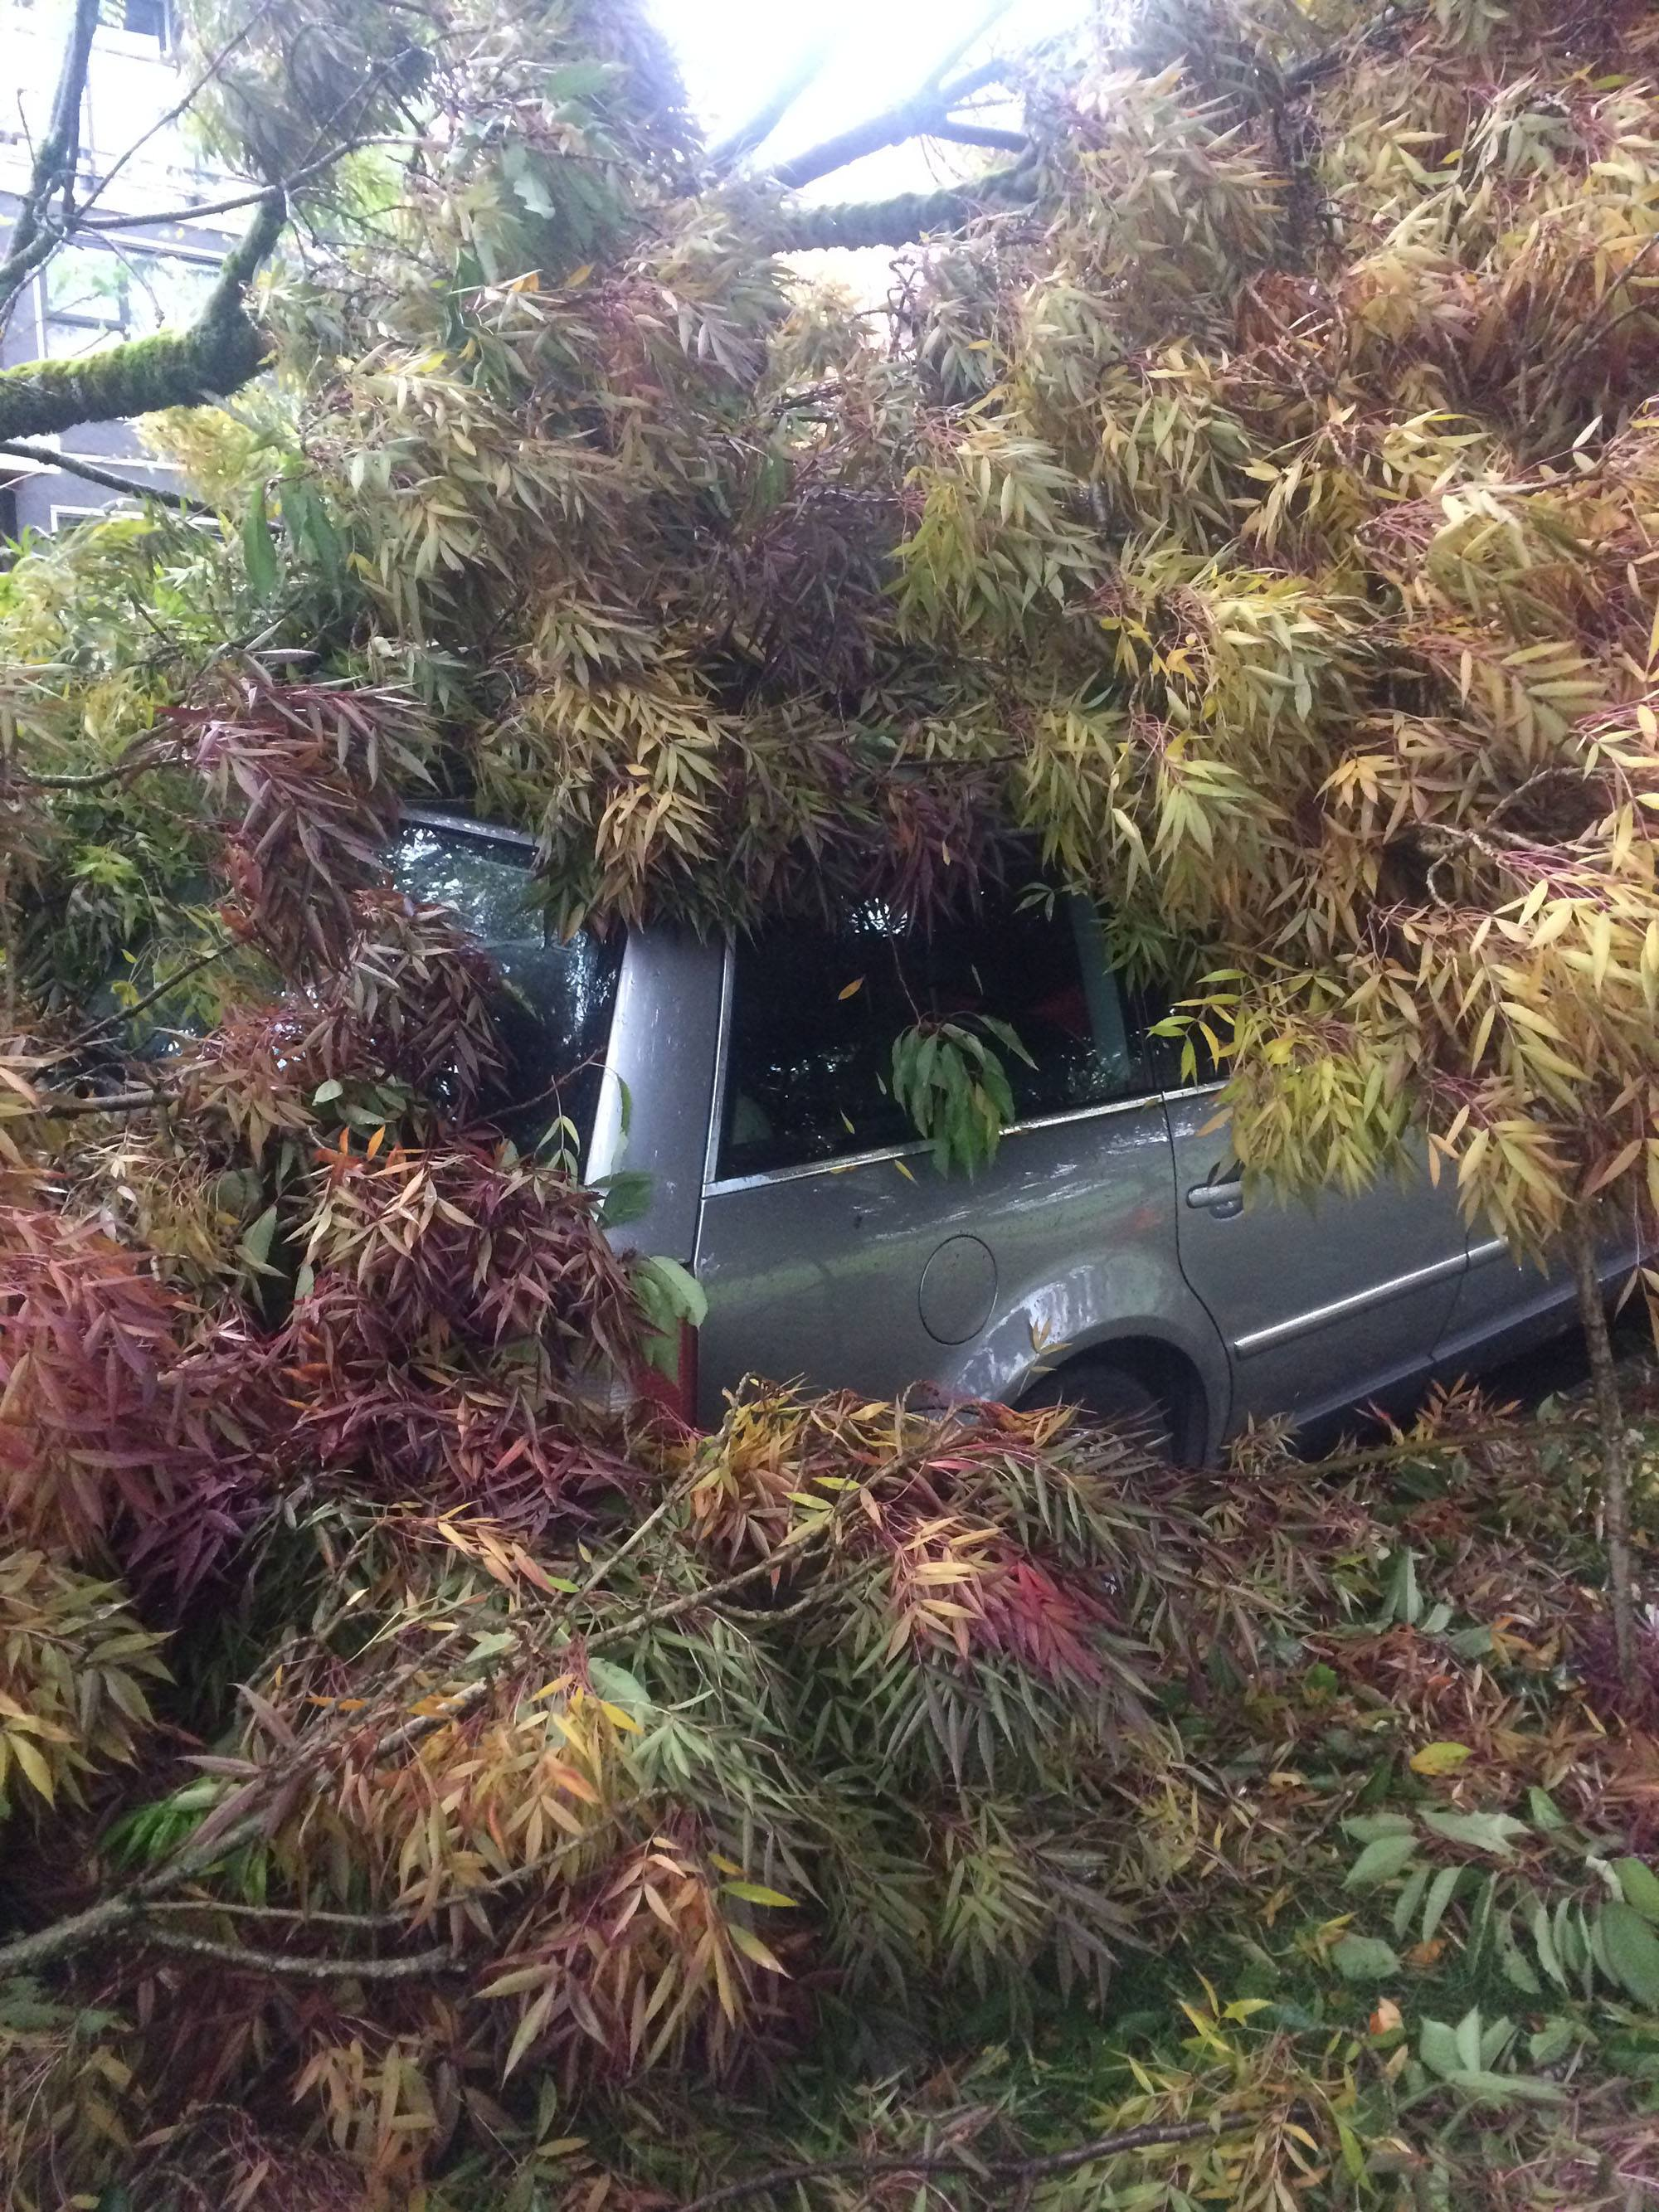 Kath Will's car was engulfed by a fallen tree during the storm in Vancouver on Friday (Kath Will)